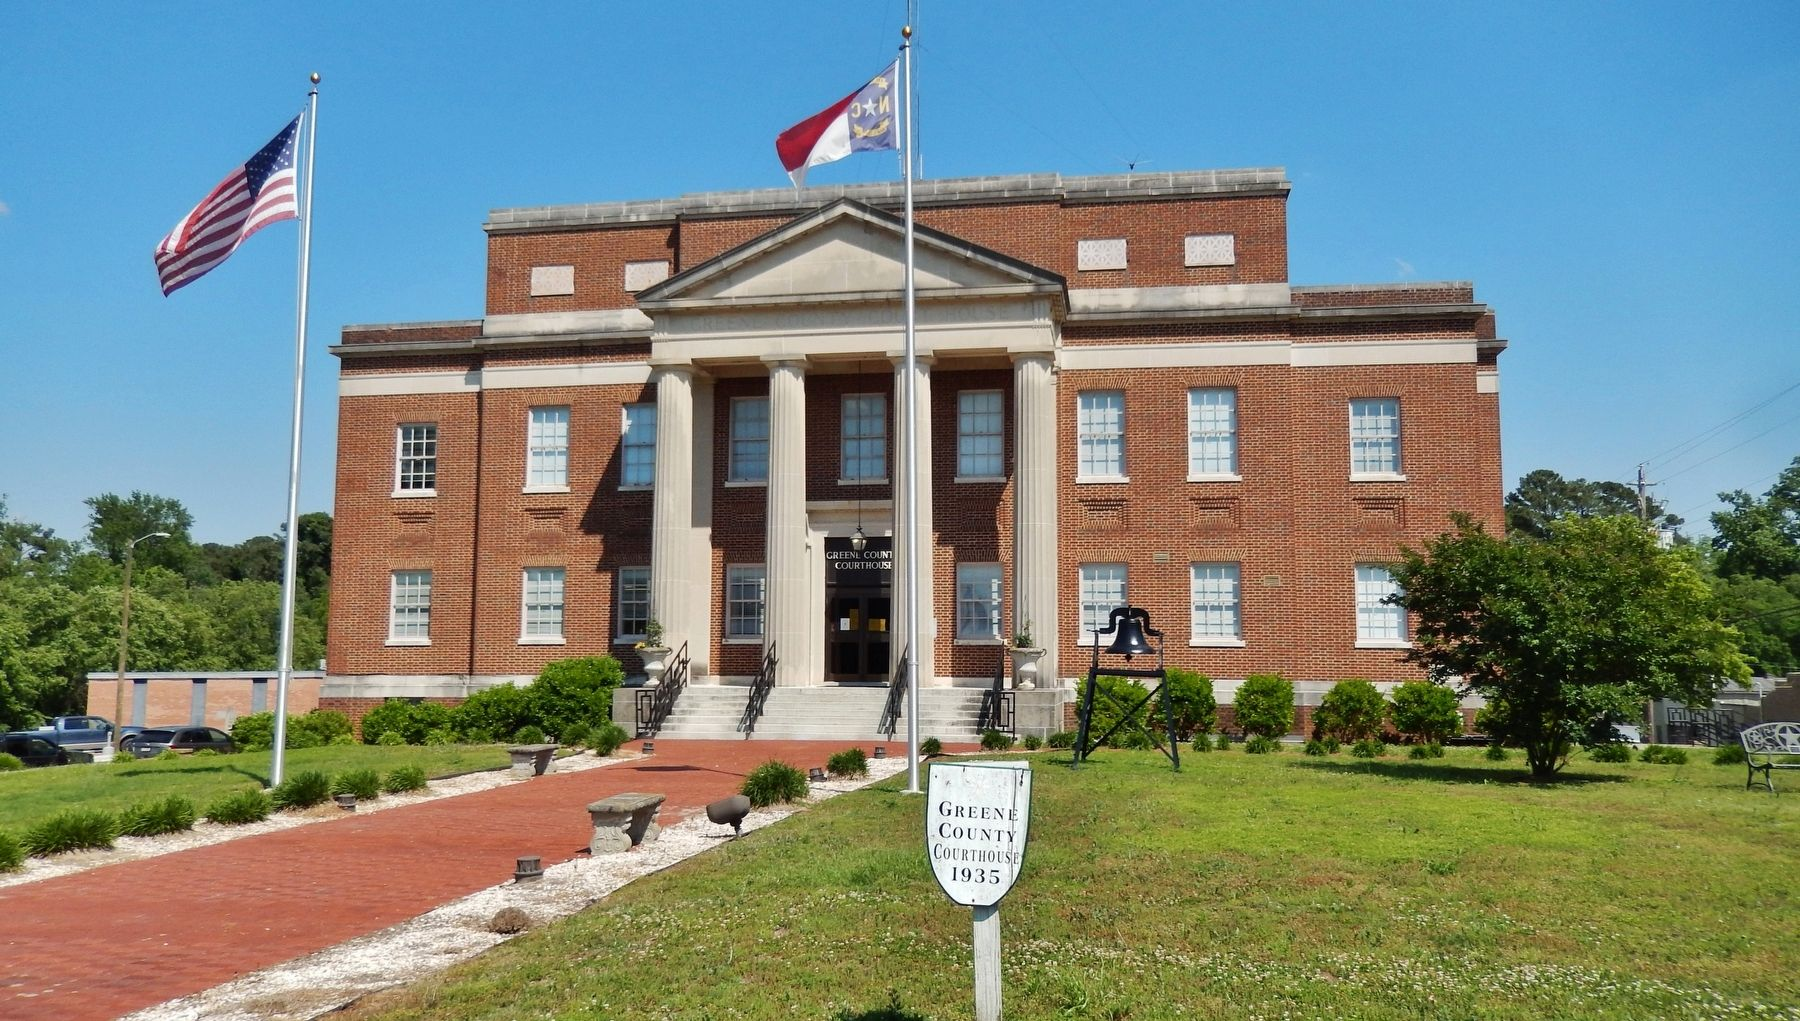 Greene County Courthouse (<i>front view; marker located just beyond image to the right</i>) image. Click for full size.